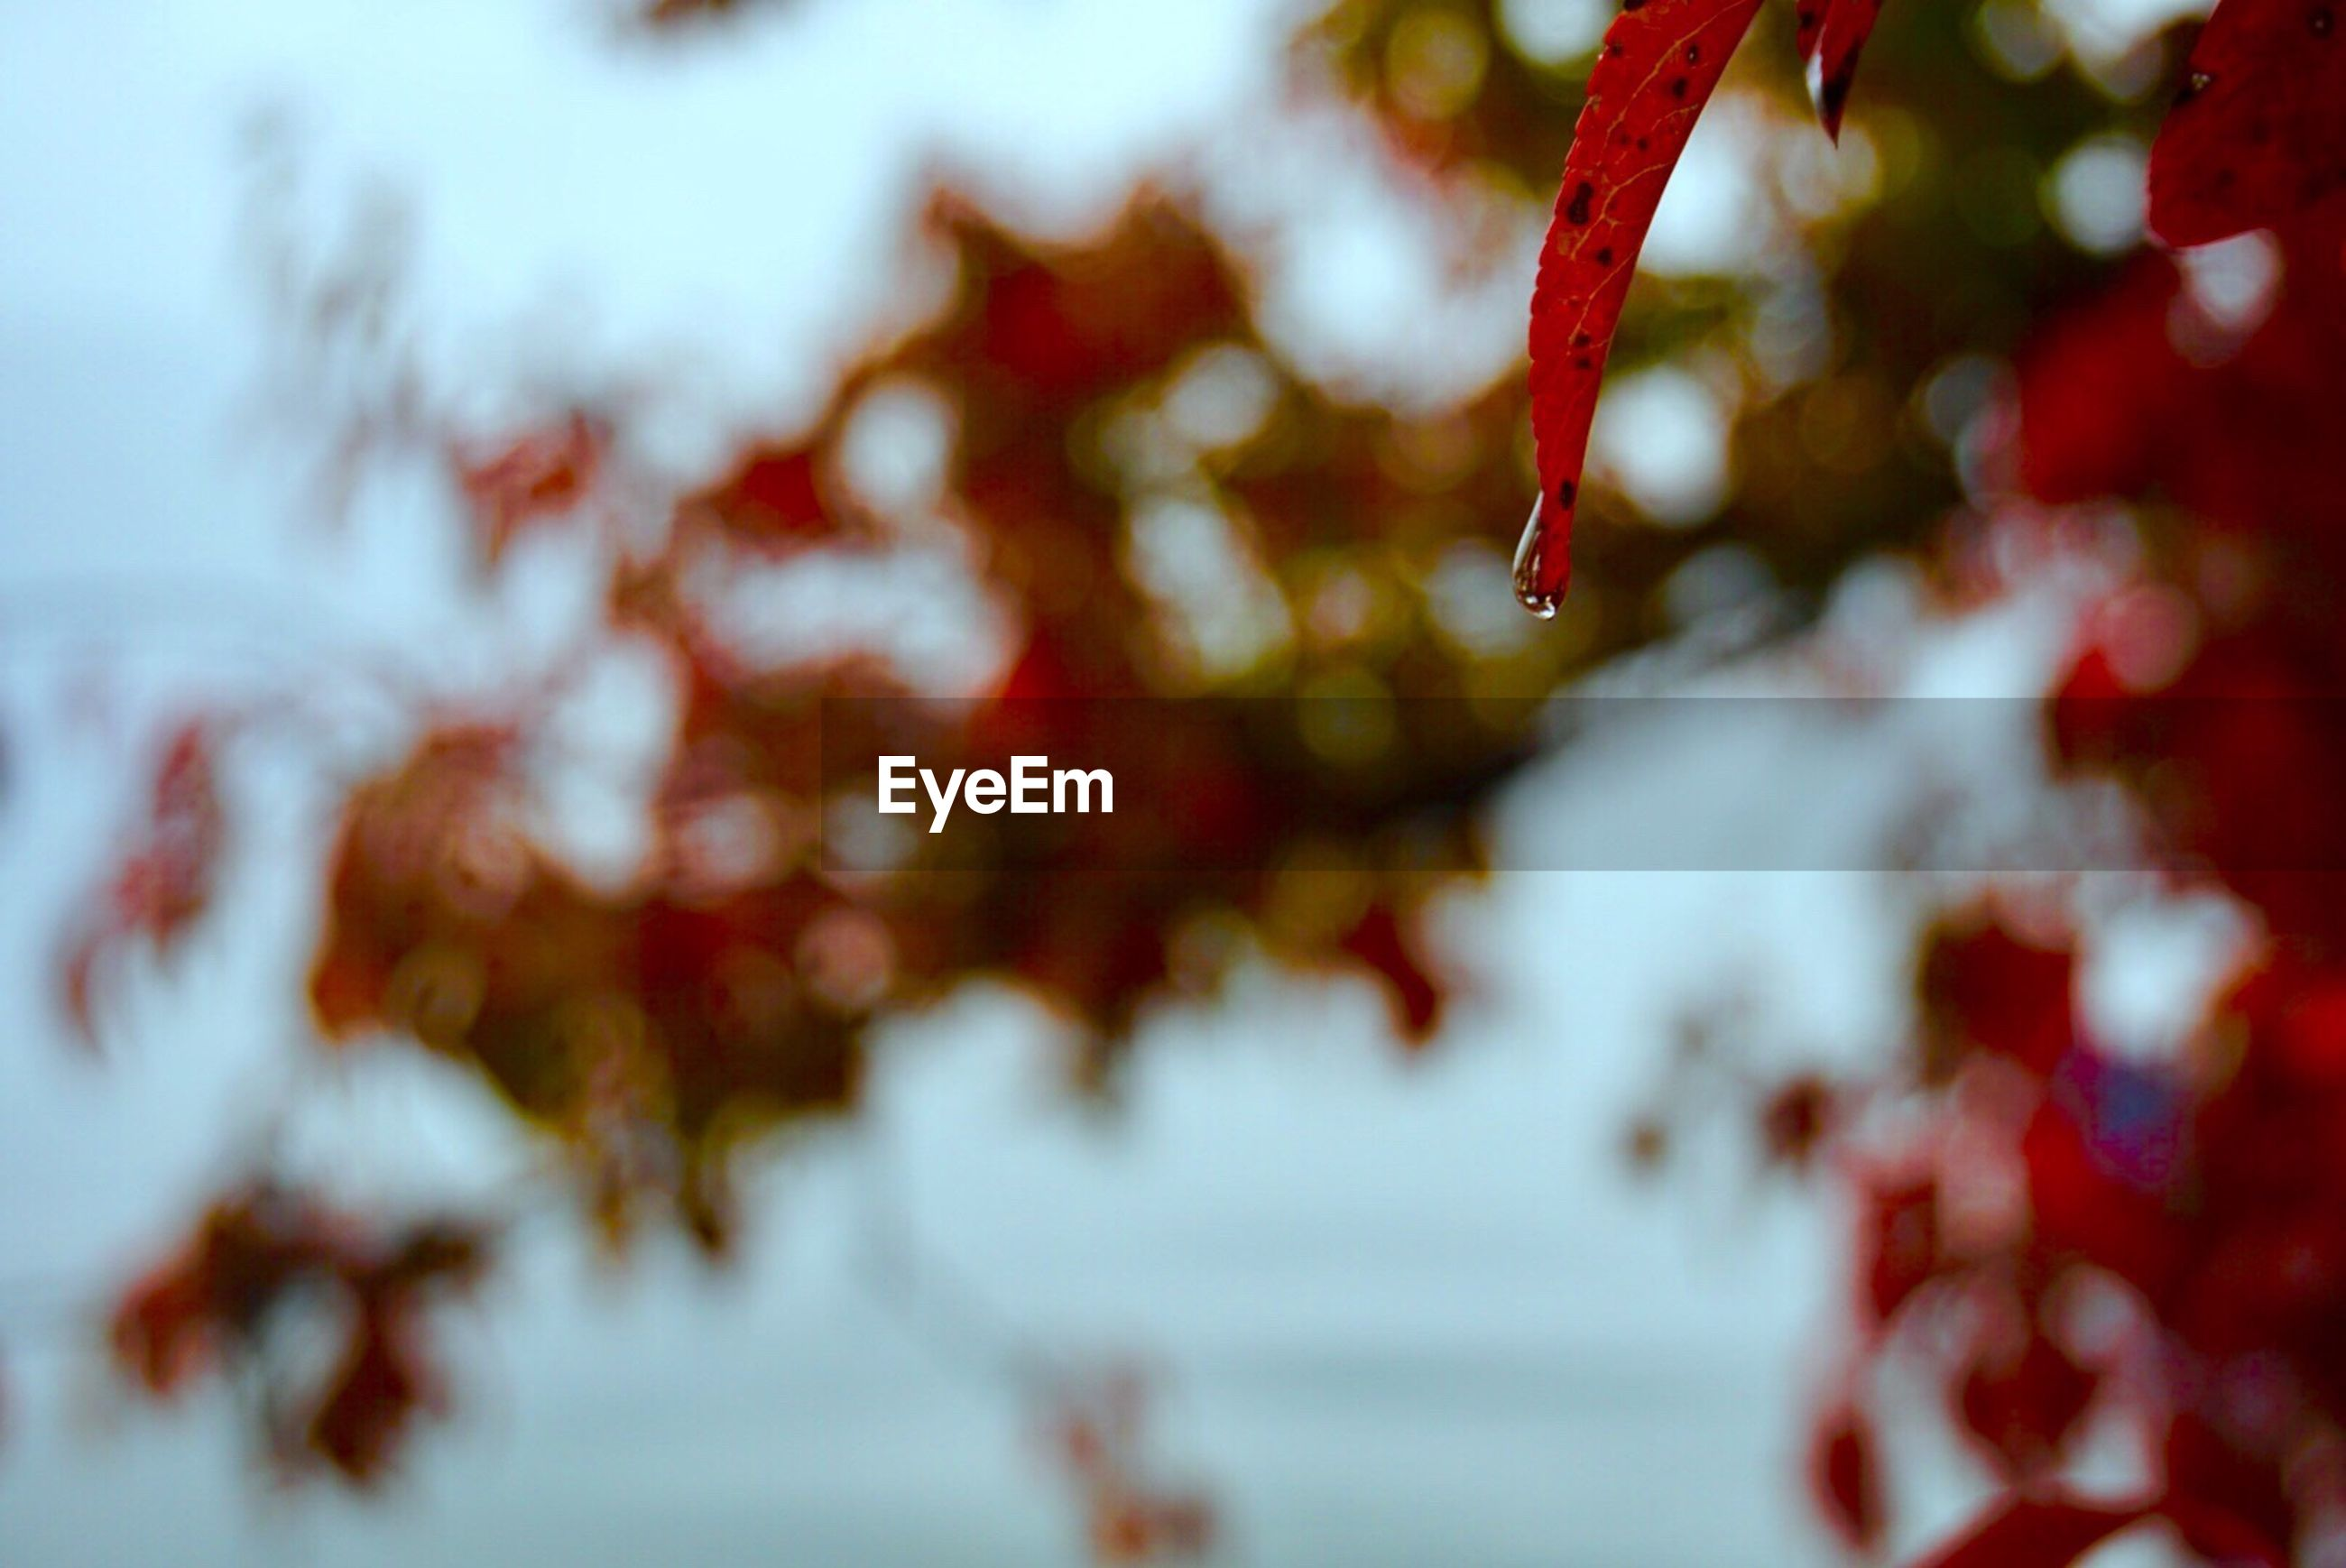 nature, close-up, red, no people, growth, outdoors, day, beauty in nature, branch, tree, fragility, backgrounds, freshness